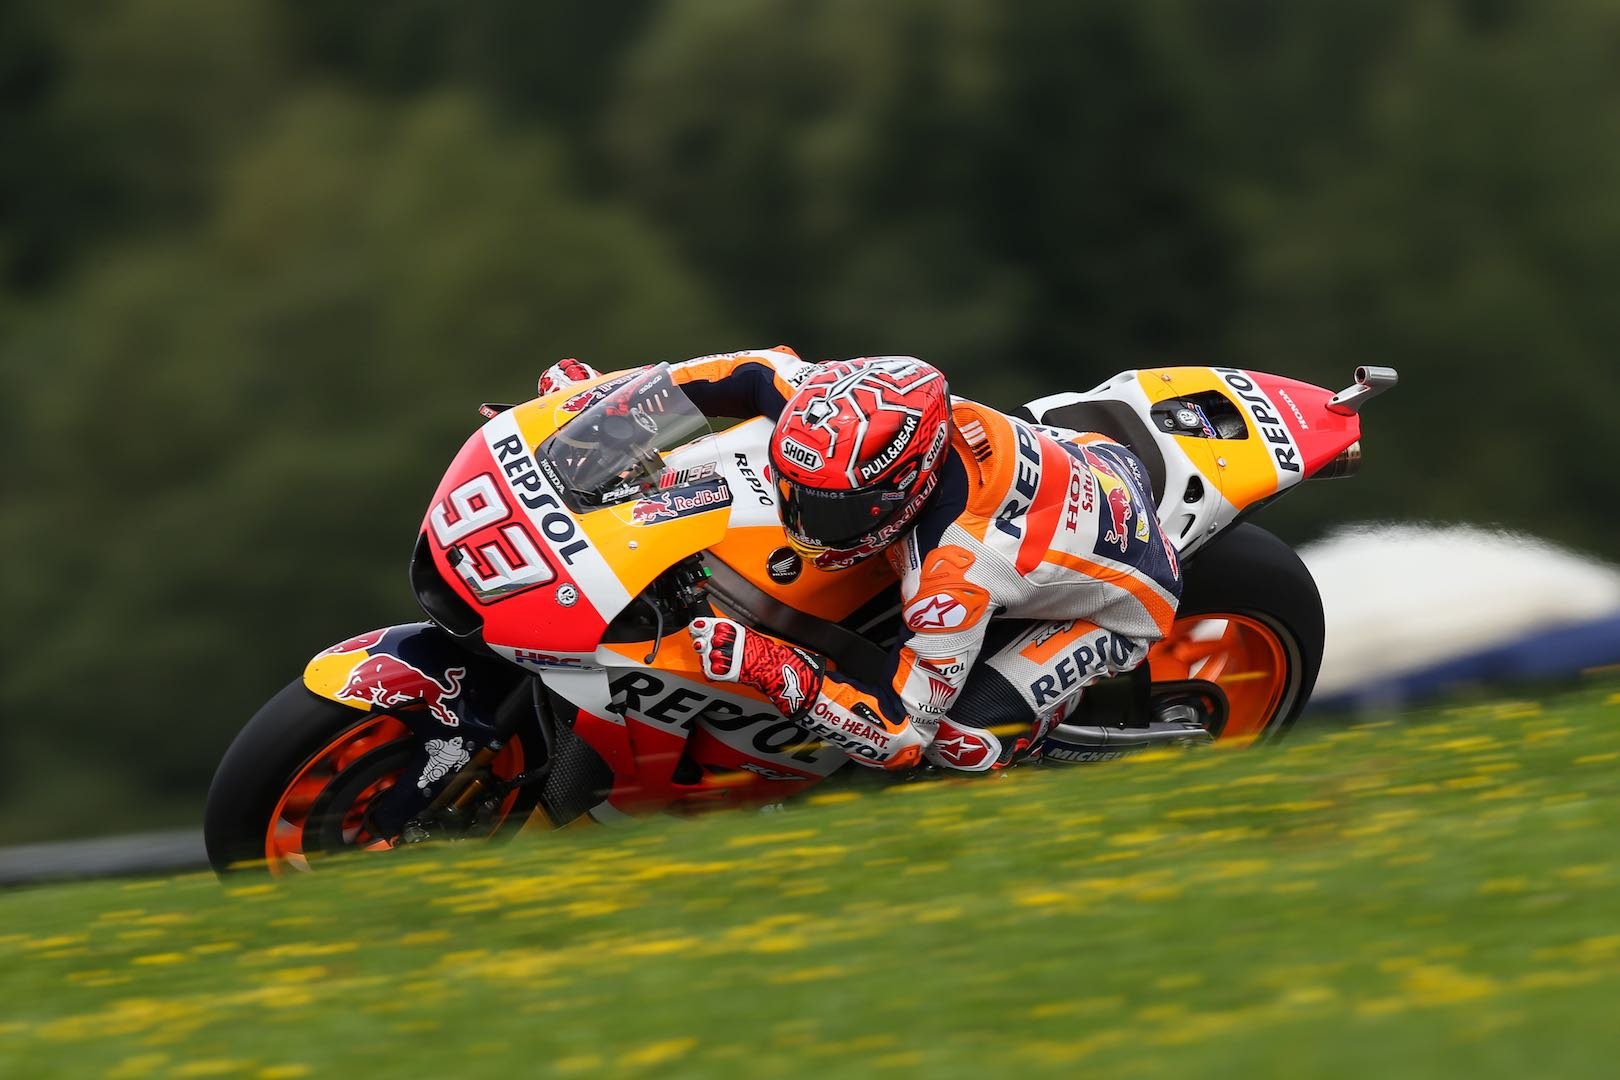 MotoGP champion Marquez takes pole position for Austrian GP